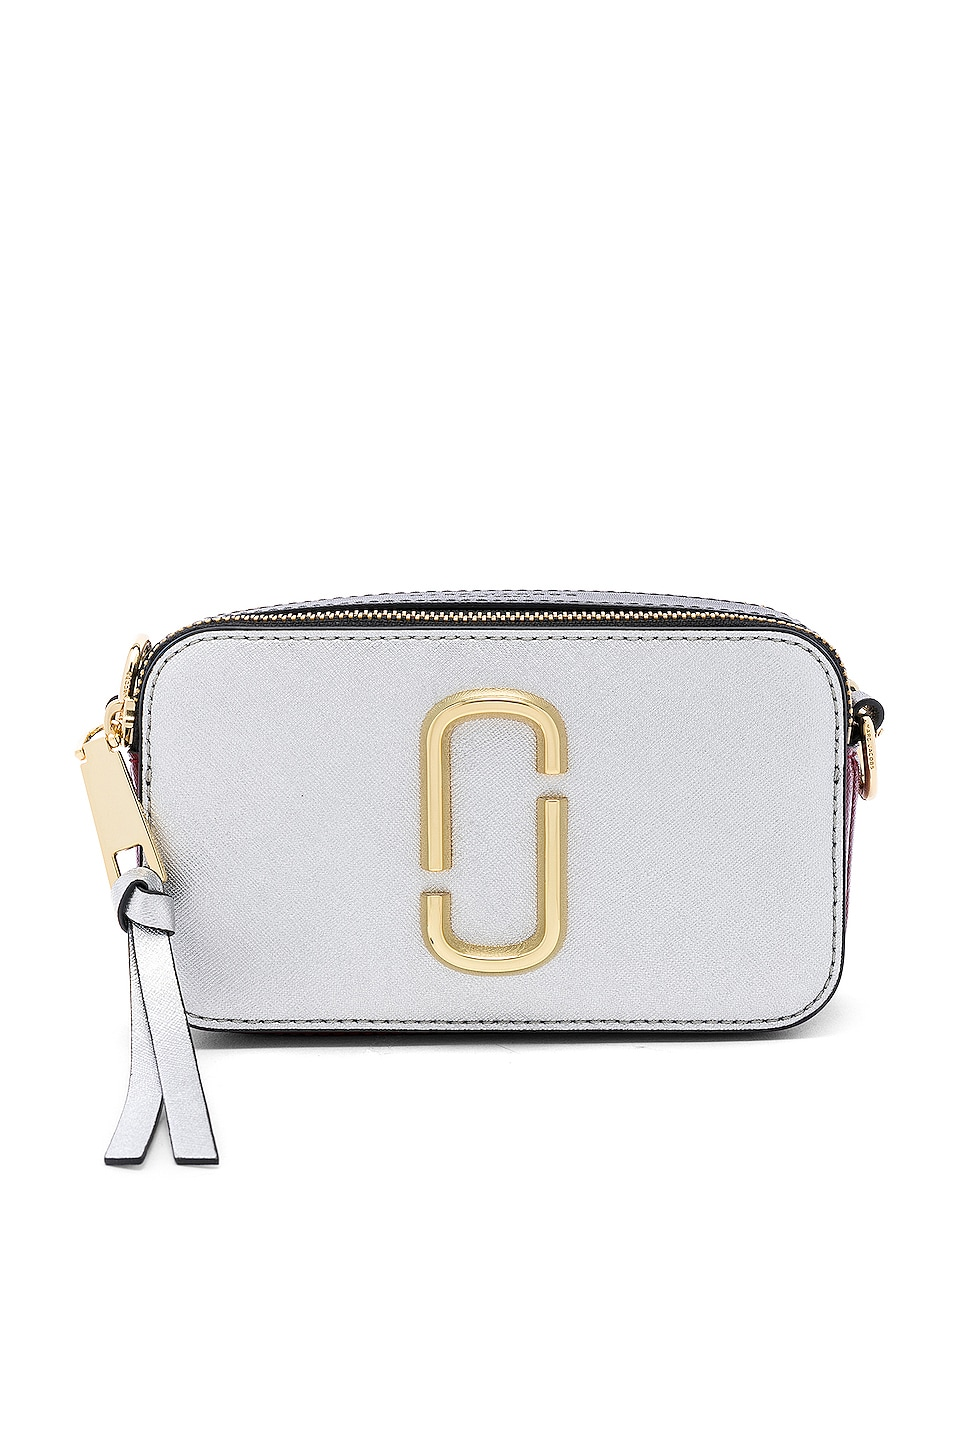 Marc Jacobs Snapshot Crossbody in Silver Multi